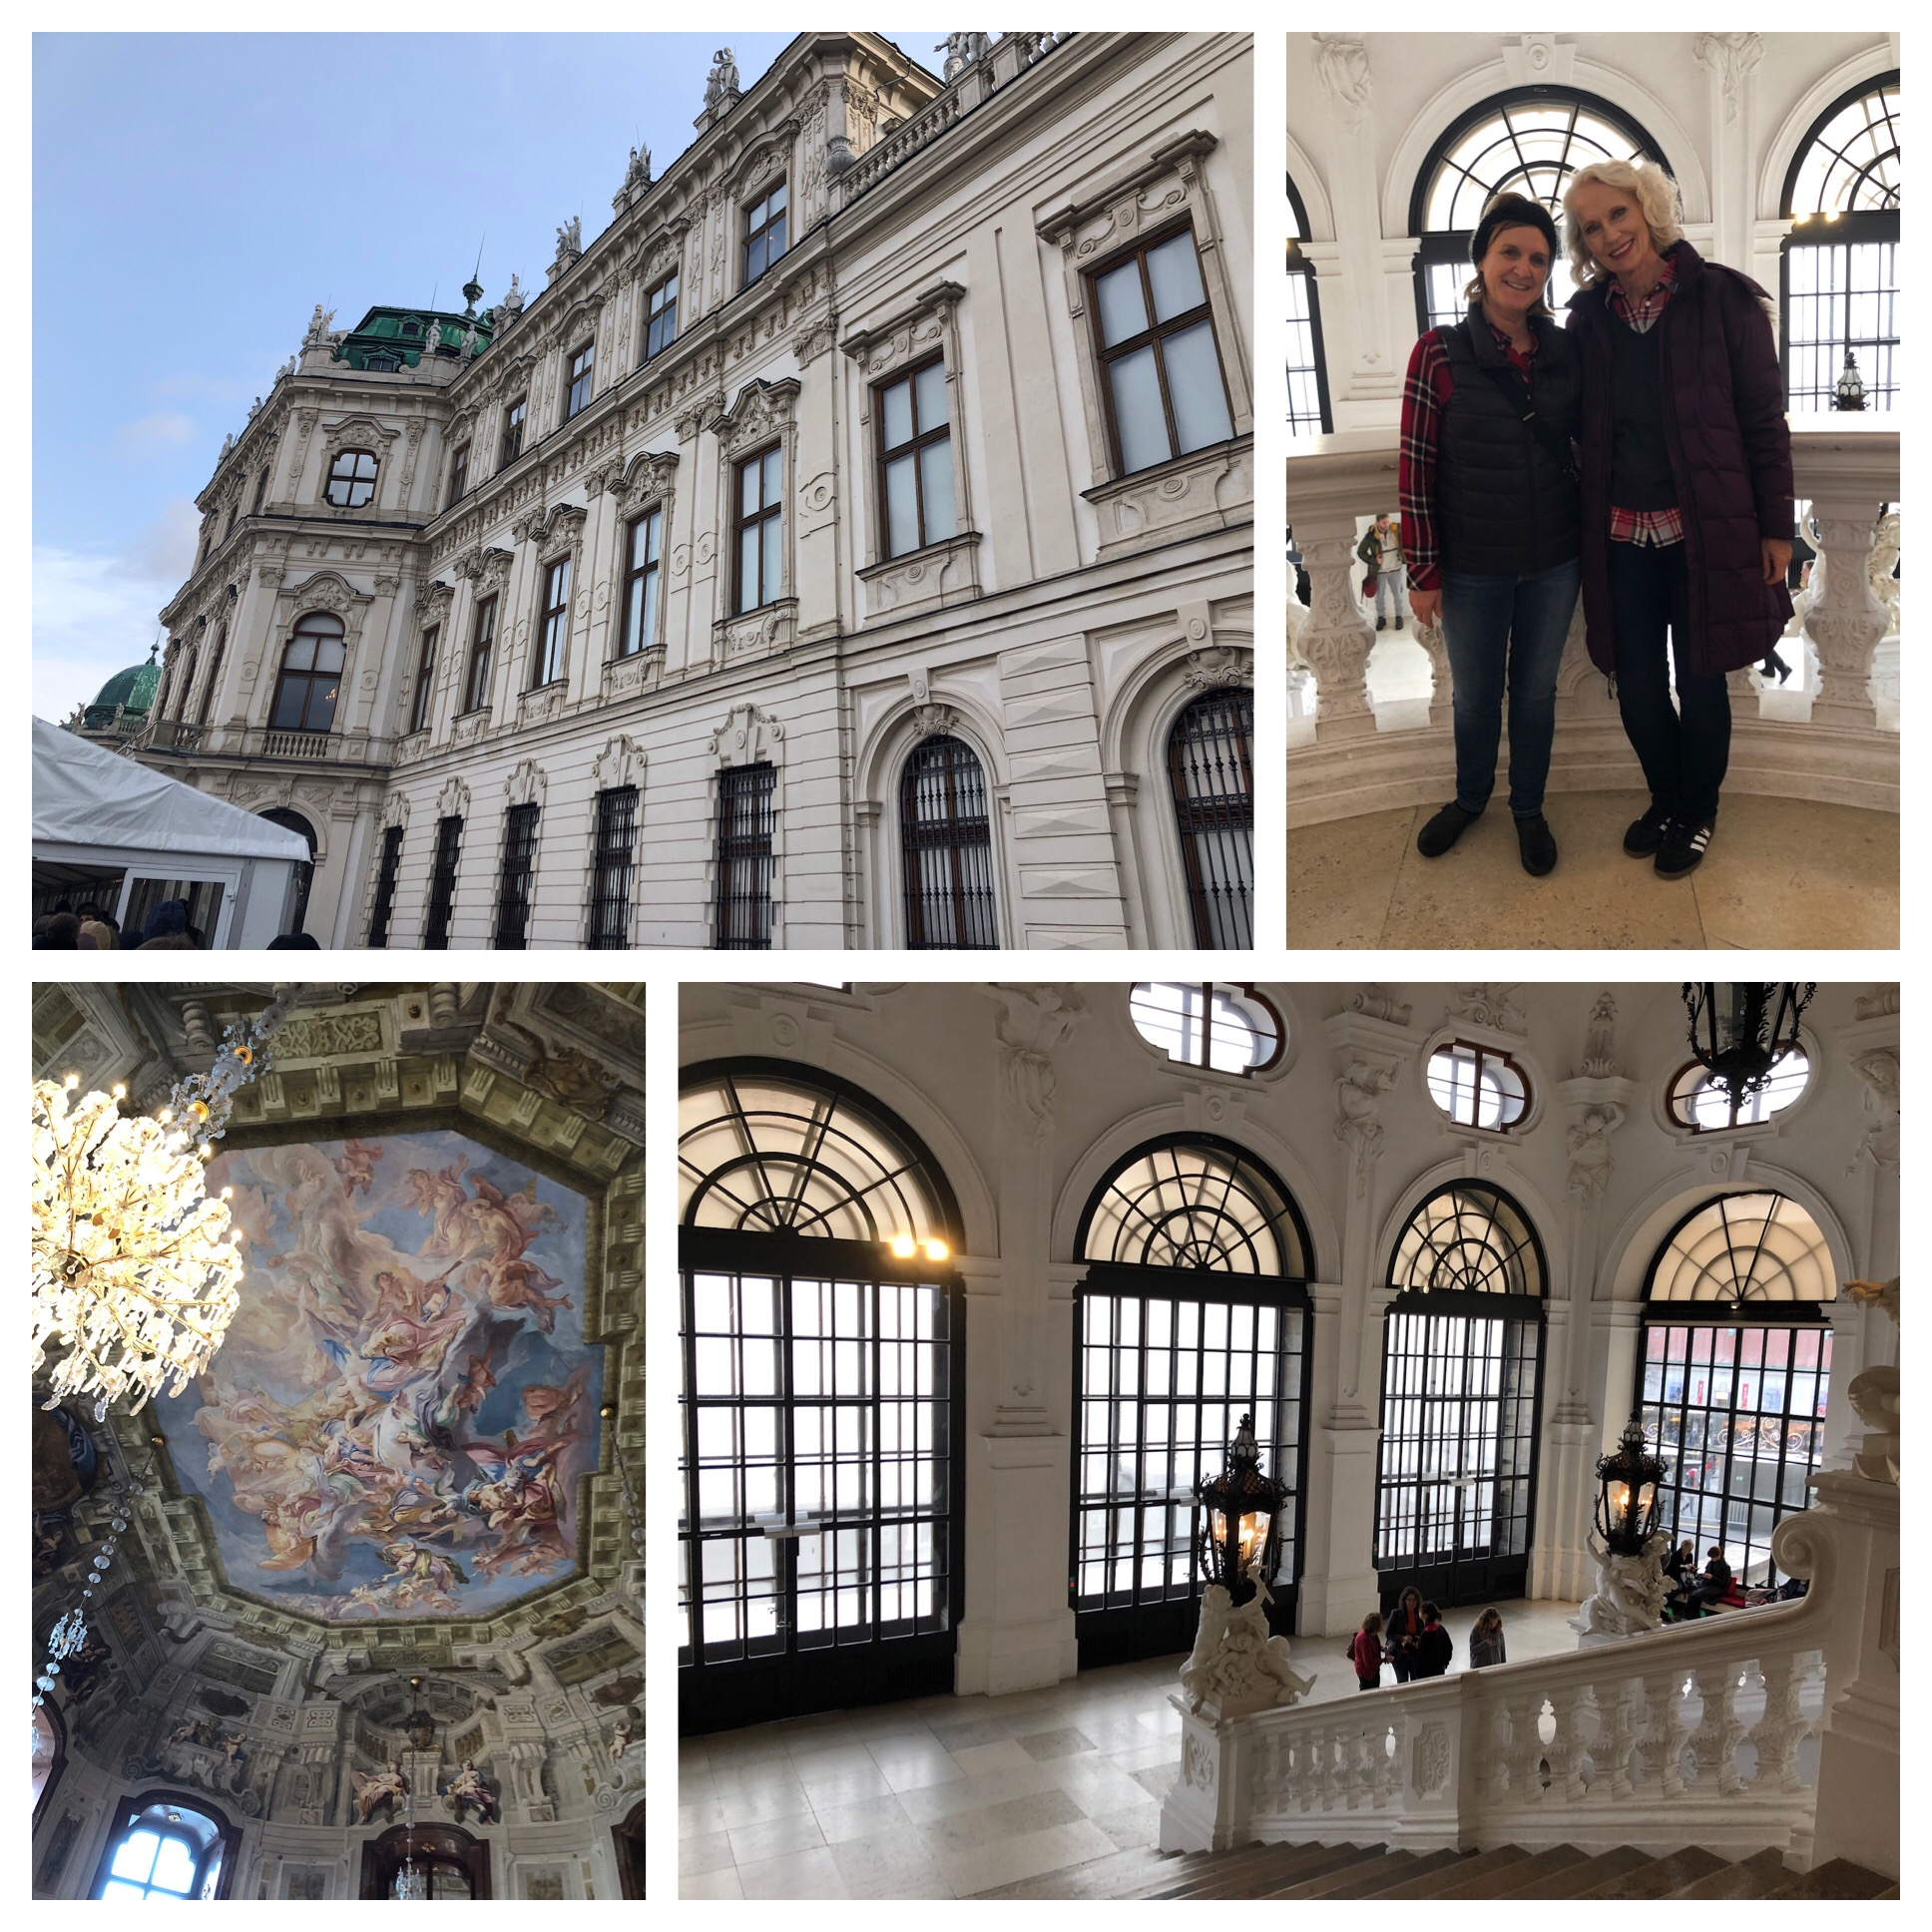 The palace is gorgeous!